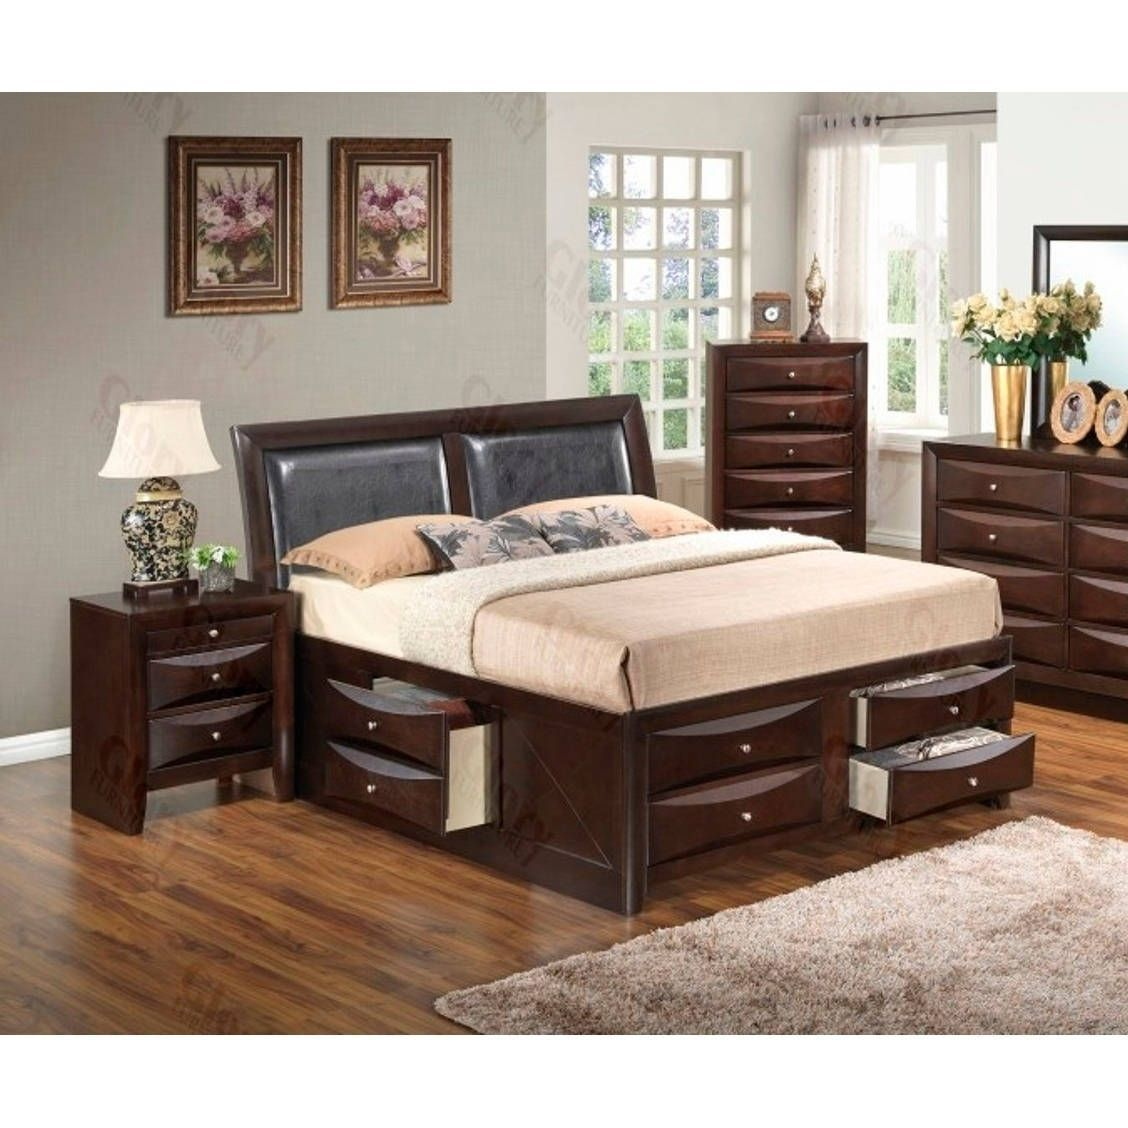 Lyke home nora queen six drawer storage bed brown cappuccino